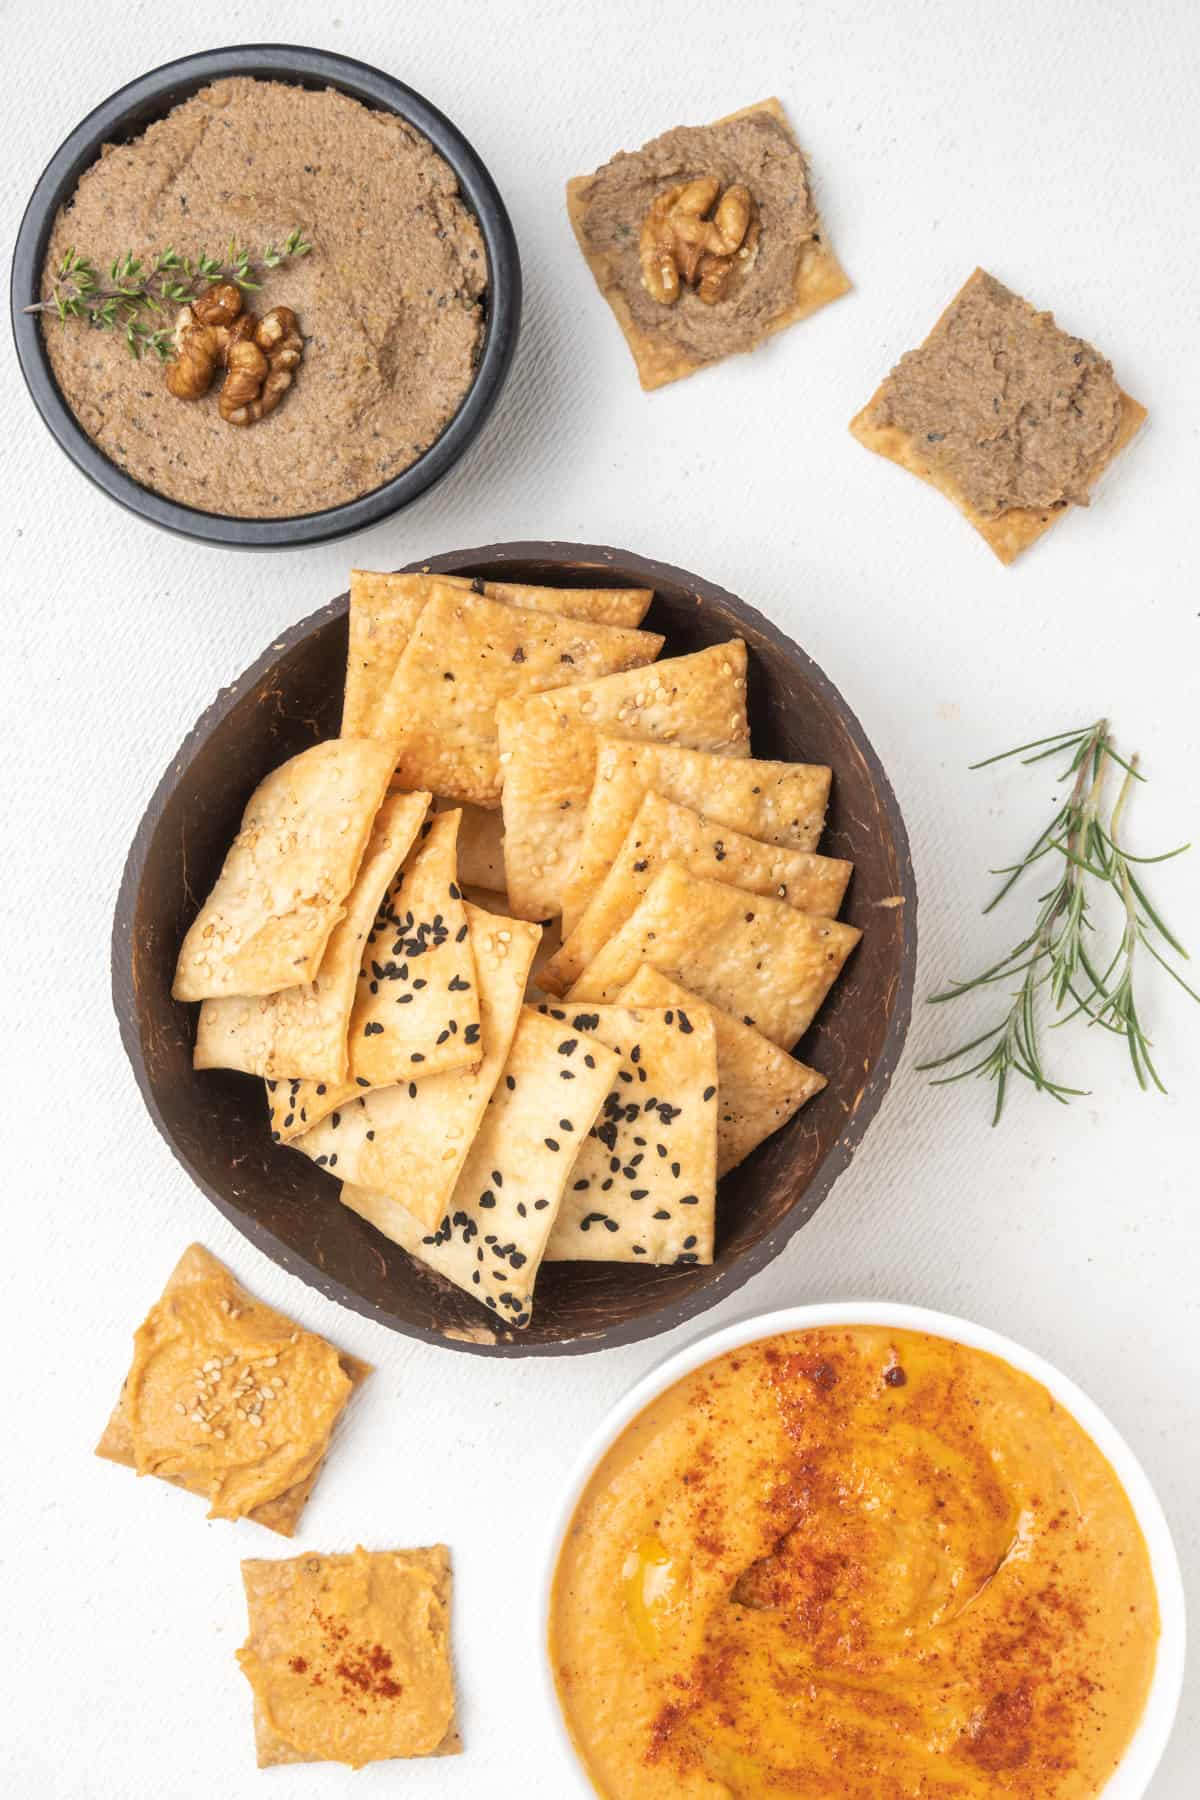 Crackers in a bowl served with two types of savoury dips: mushroom pate and grilled red pepper hummus.